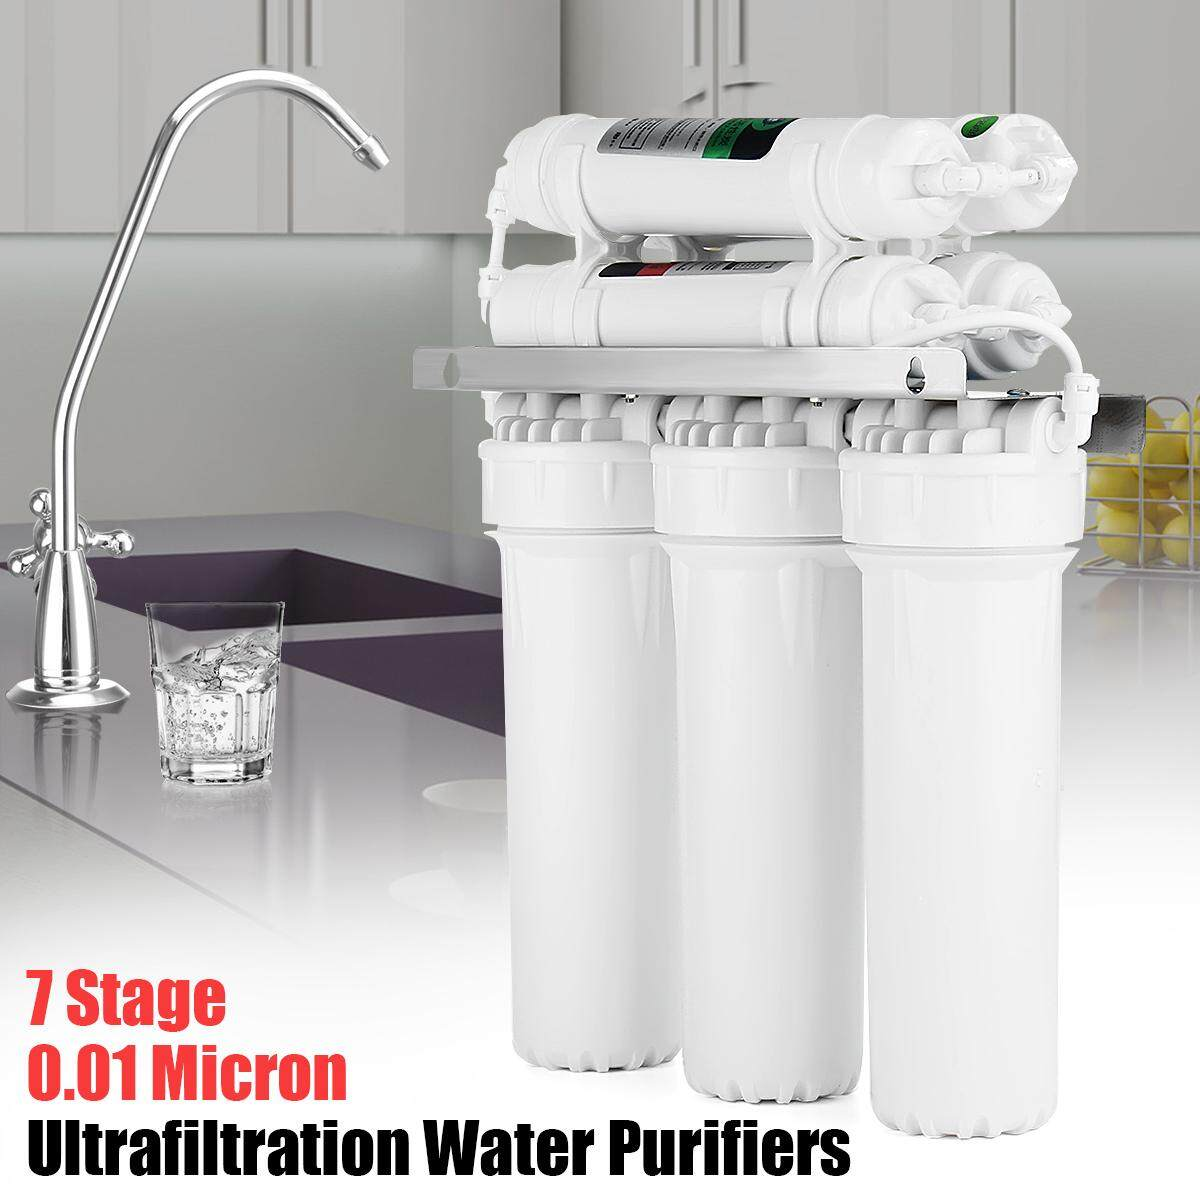 Home Kitchen 7 Stage Water Purifier Ultra Filtration Drinking Water System Filter Purifier By Warmroom.